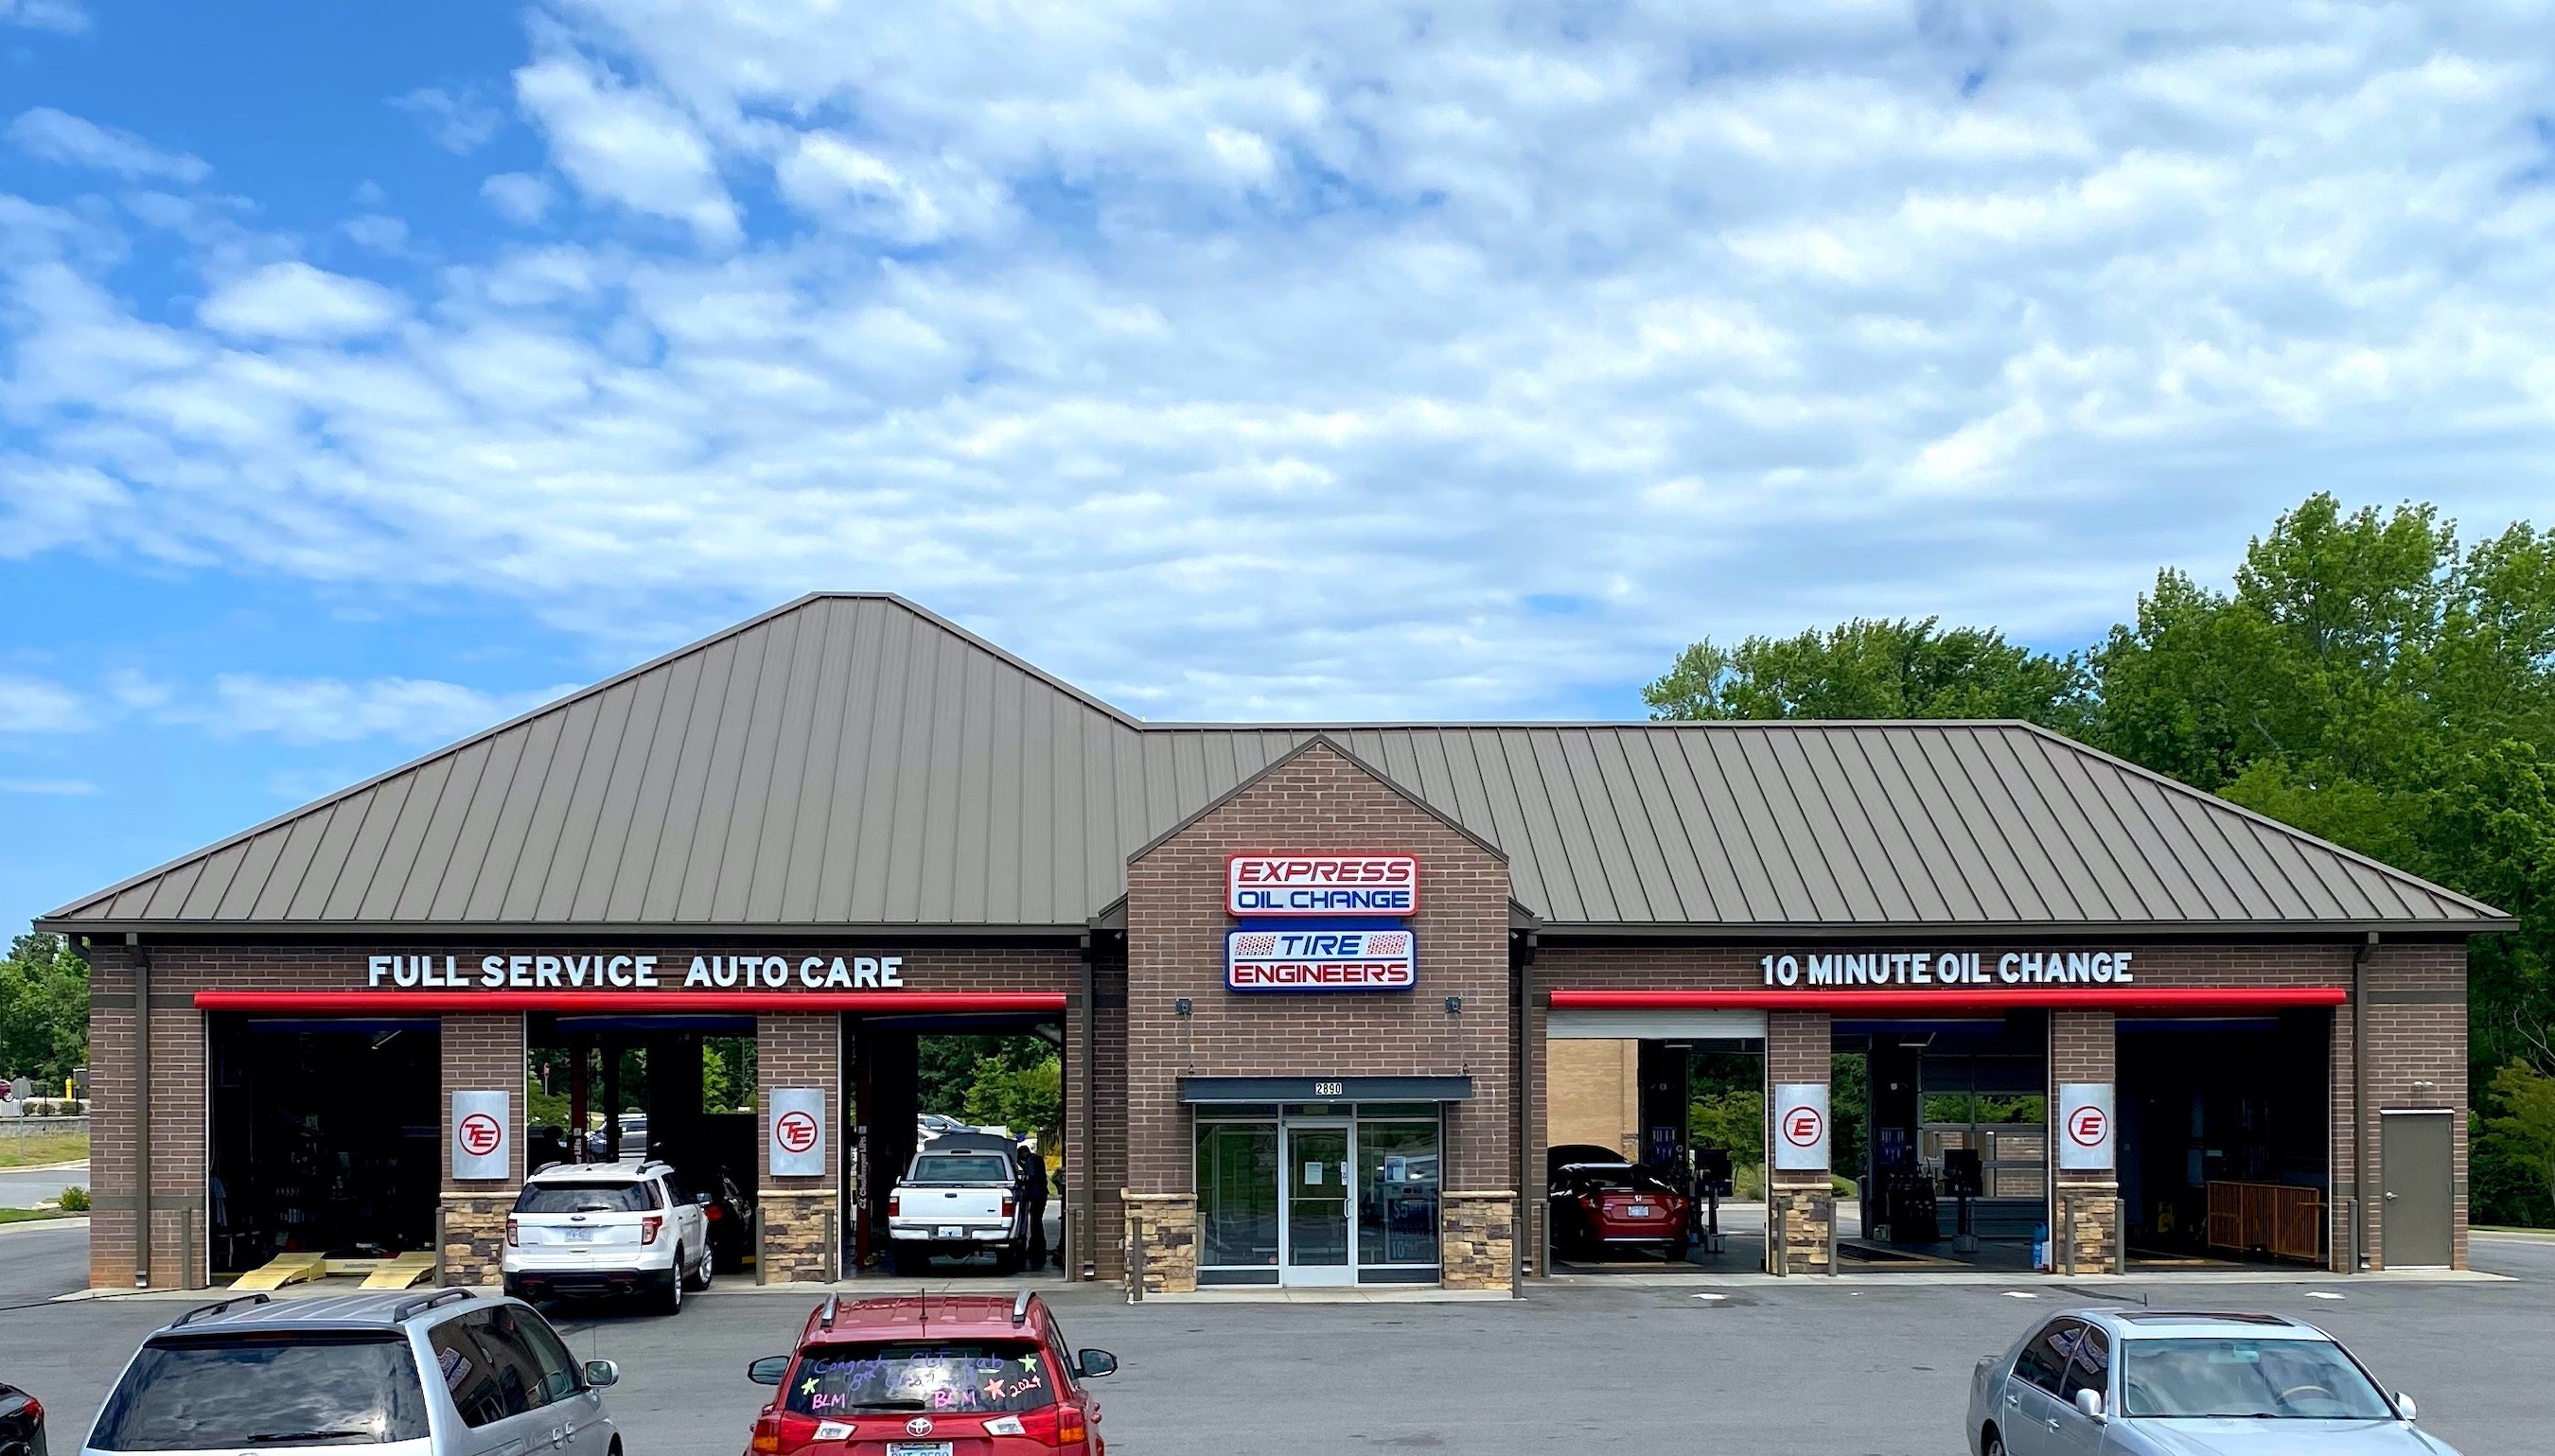 Express Oil Change & Tire Engineers Concord, NC - Concord Mills store